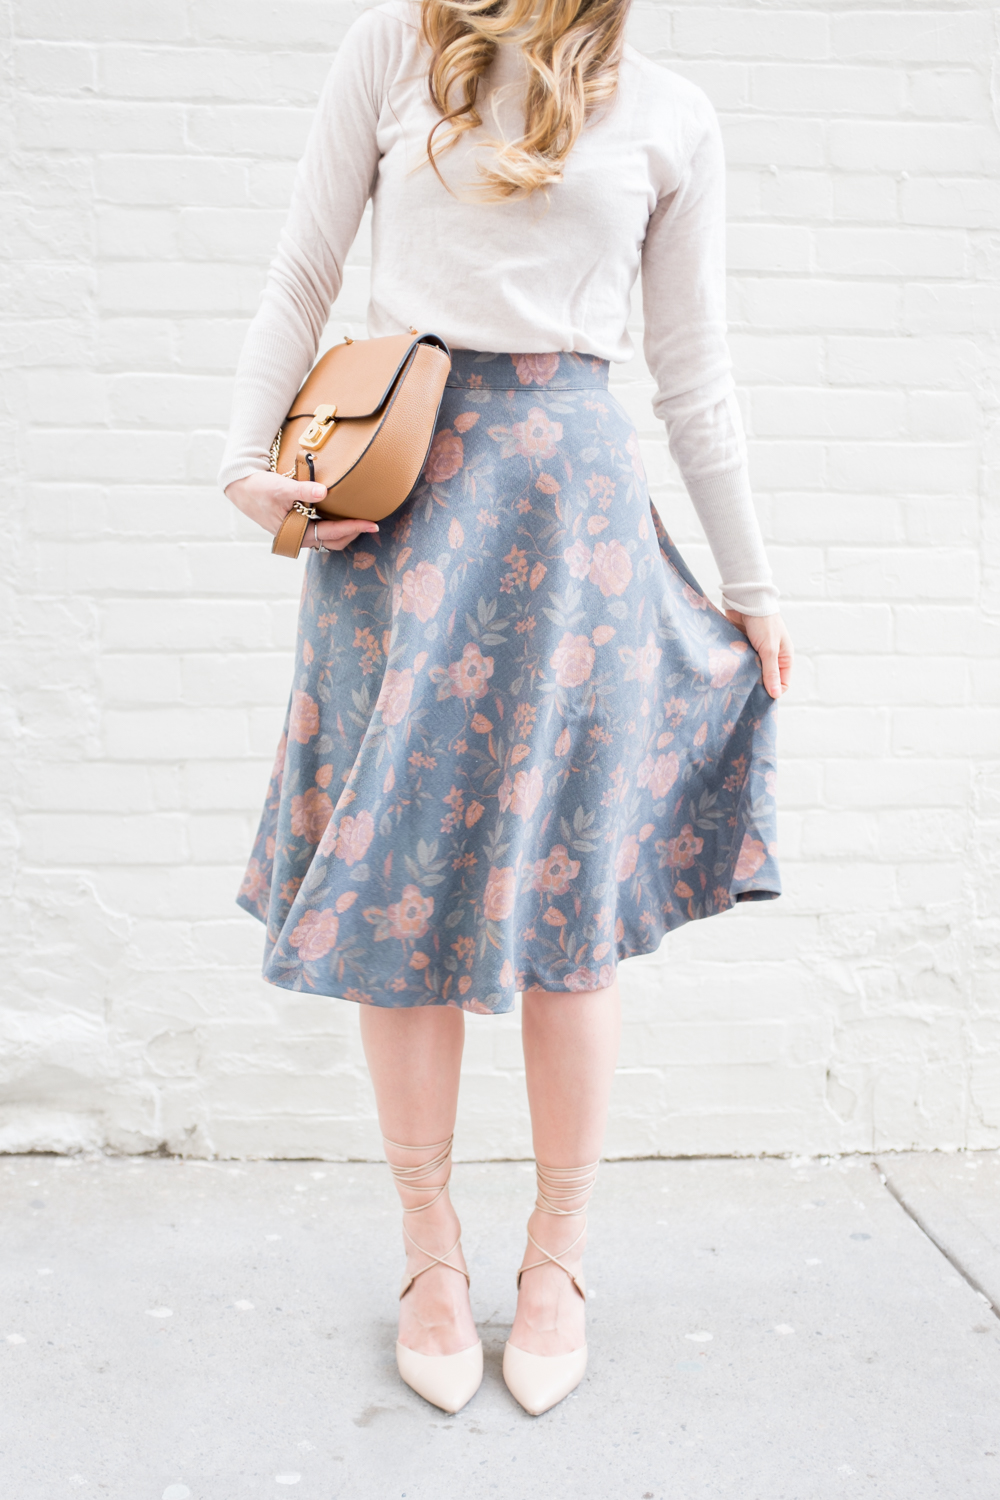 61ddfe0a1 Skirt - Pink Martini, Top - Zara, Shoes - Le Chateau, Purse - Forever 21